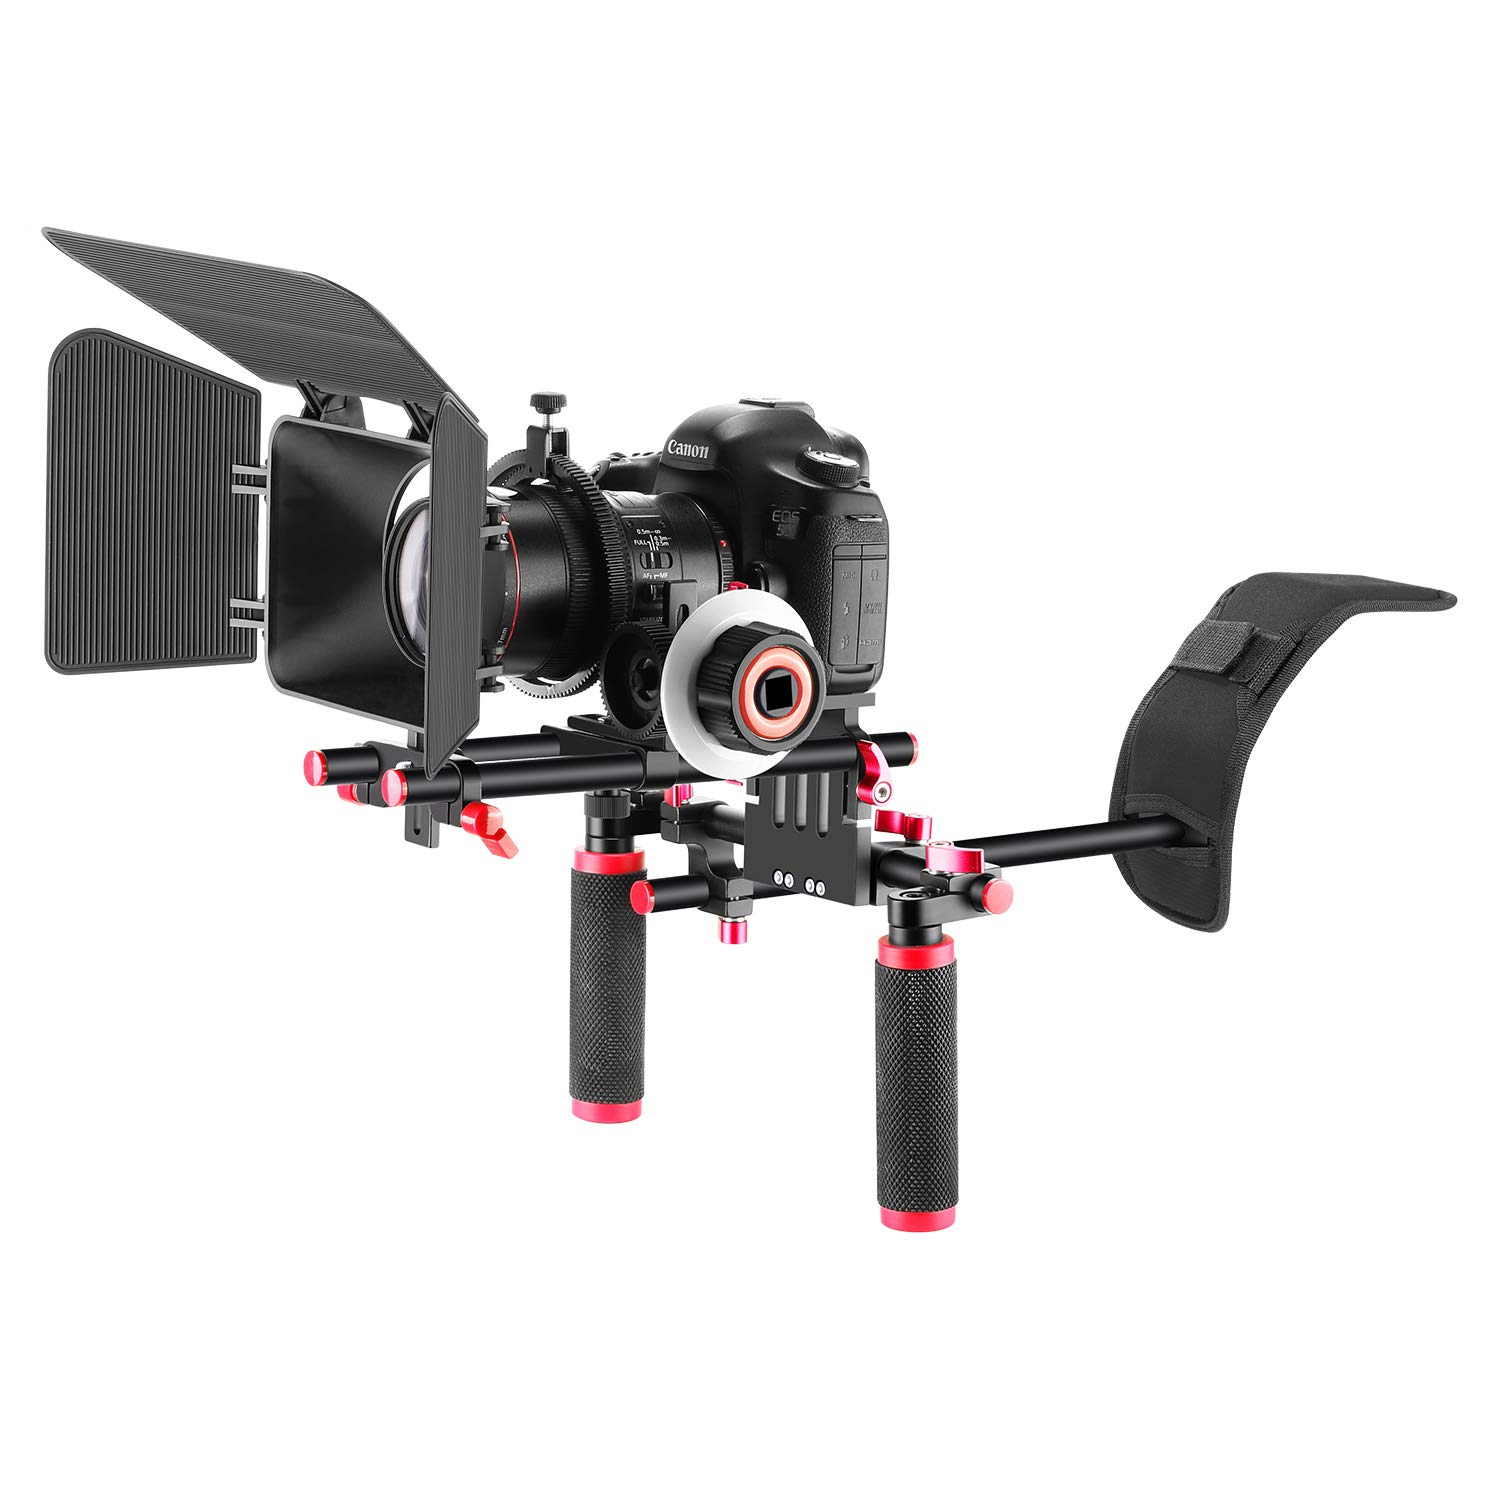 Neewer Film Movie Video Making System Kit for Canon Nikon Sony and Other DSLR Cameras Video Camcorders, Includes: Shoulder Mount, 15mm Rod, Follow Focus, Matte Box (Red) by Neewer